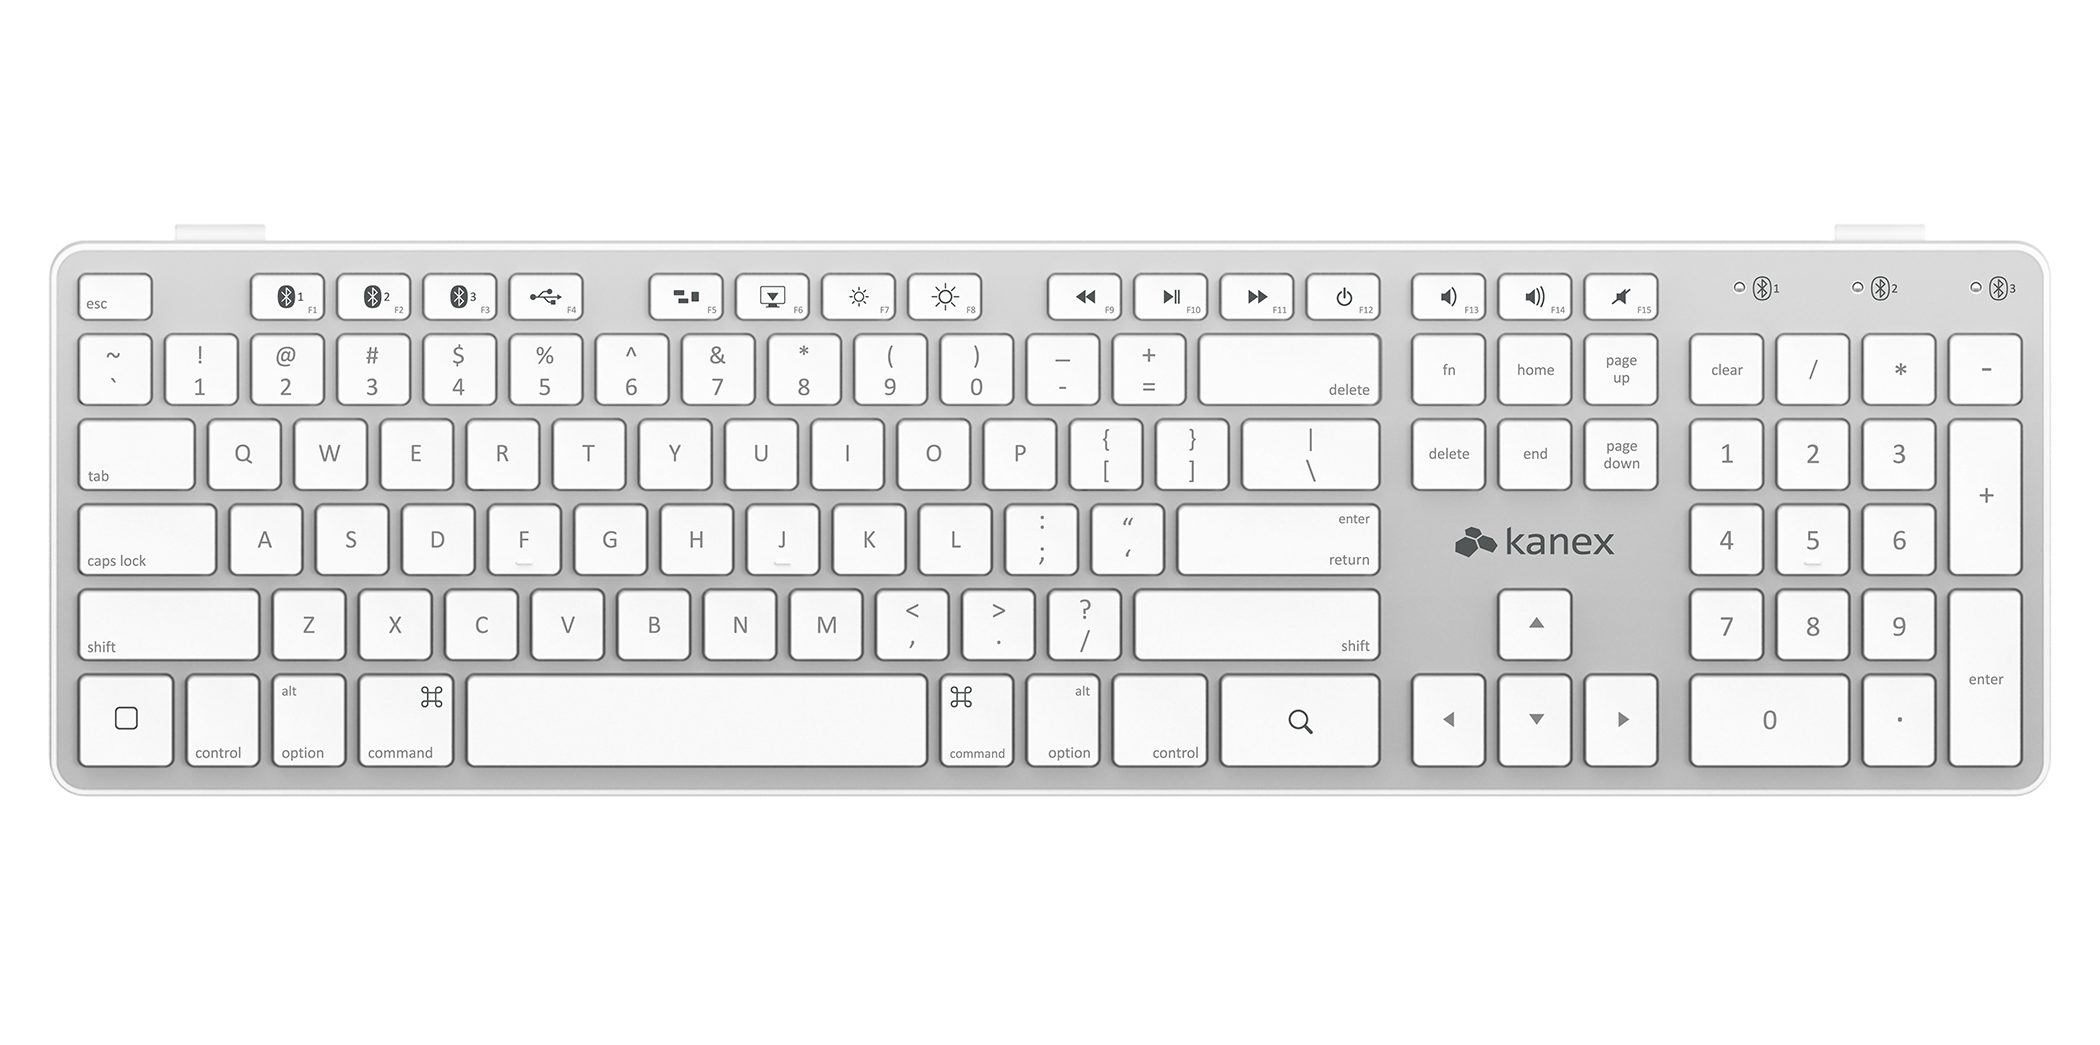 Pin Computer-keyboard-layout-description-i3jpg on Pinterest